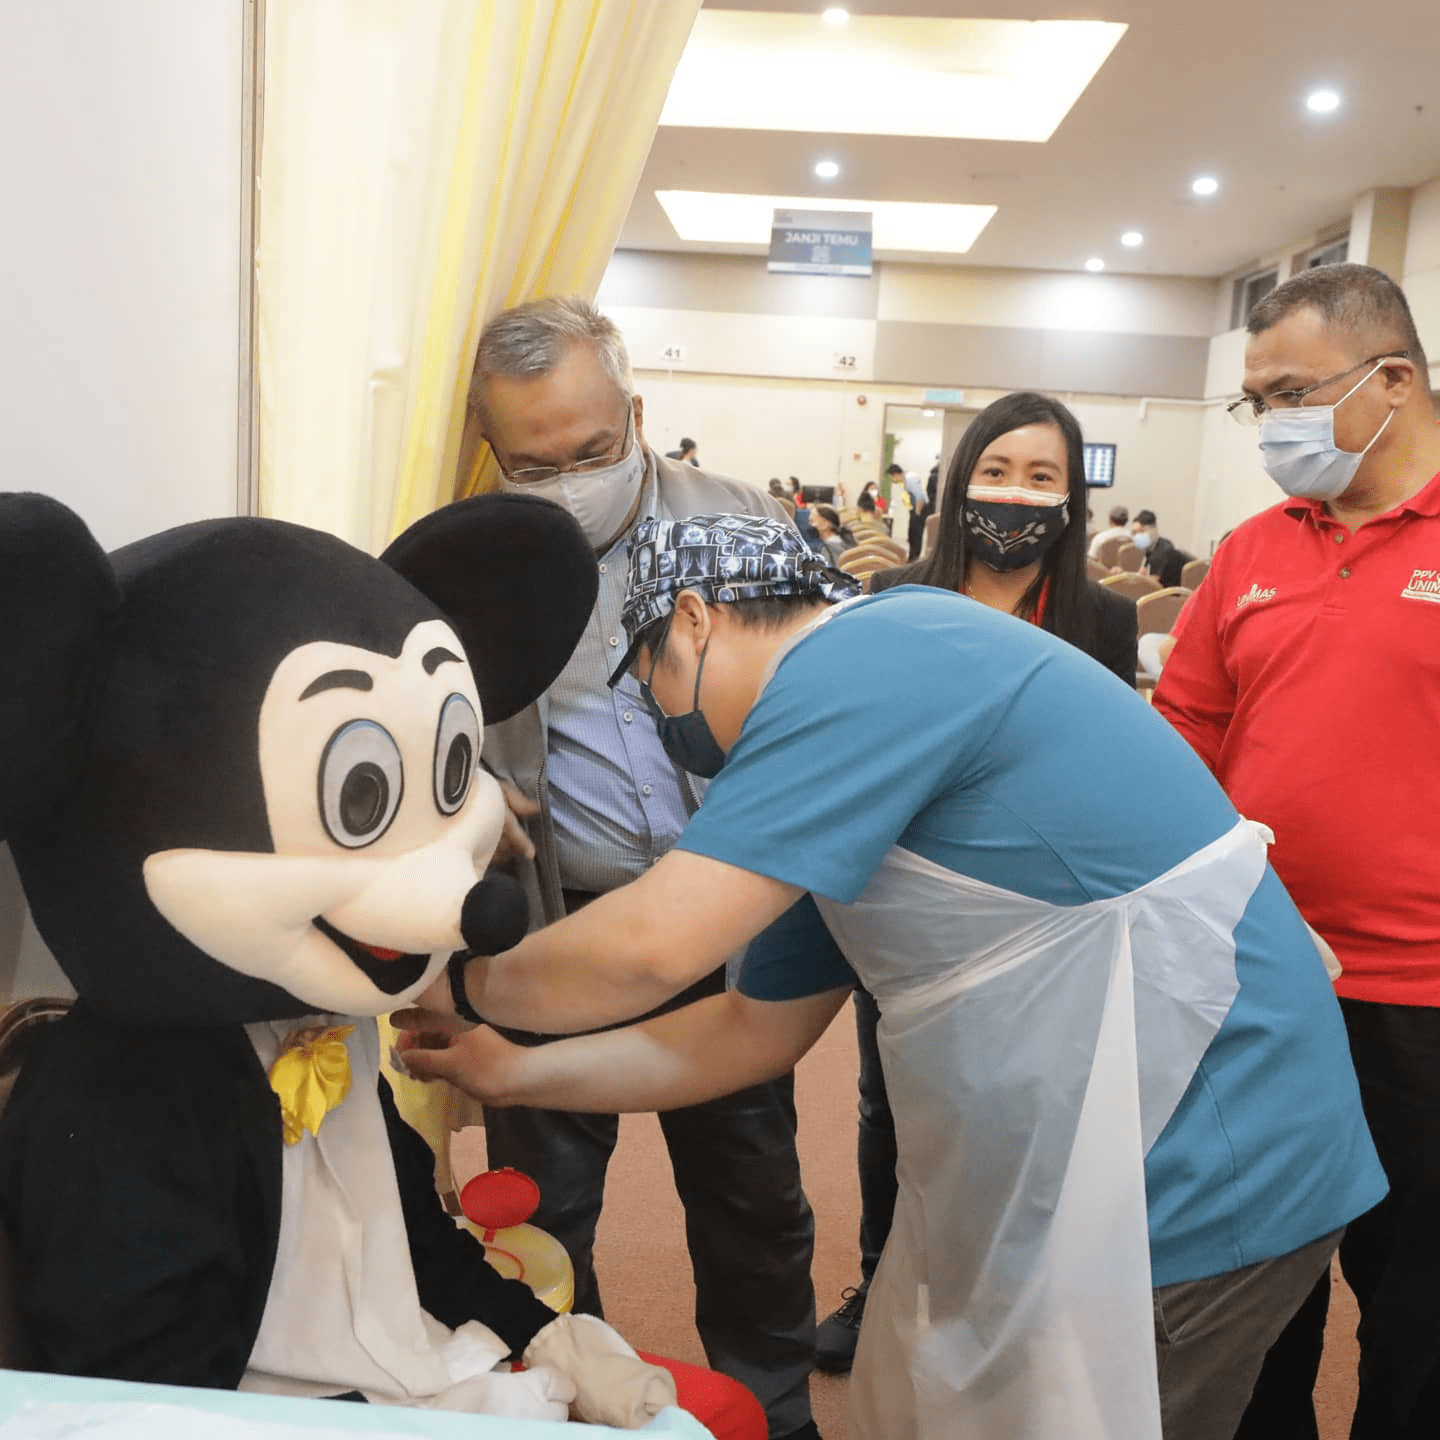 Malaysians wear costumes to vaccination - Mickey Mouse